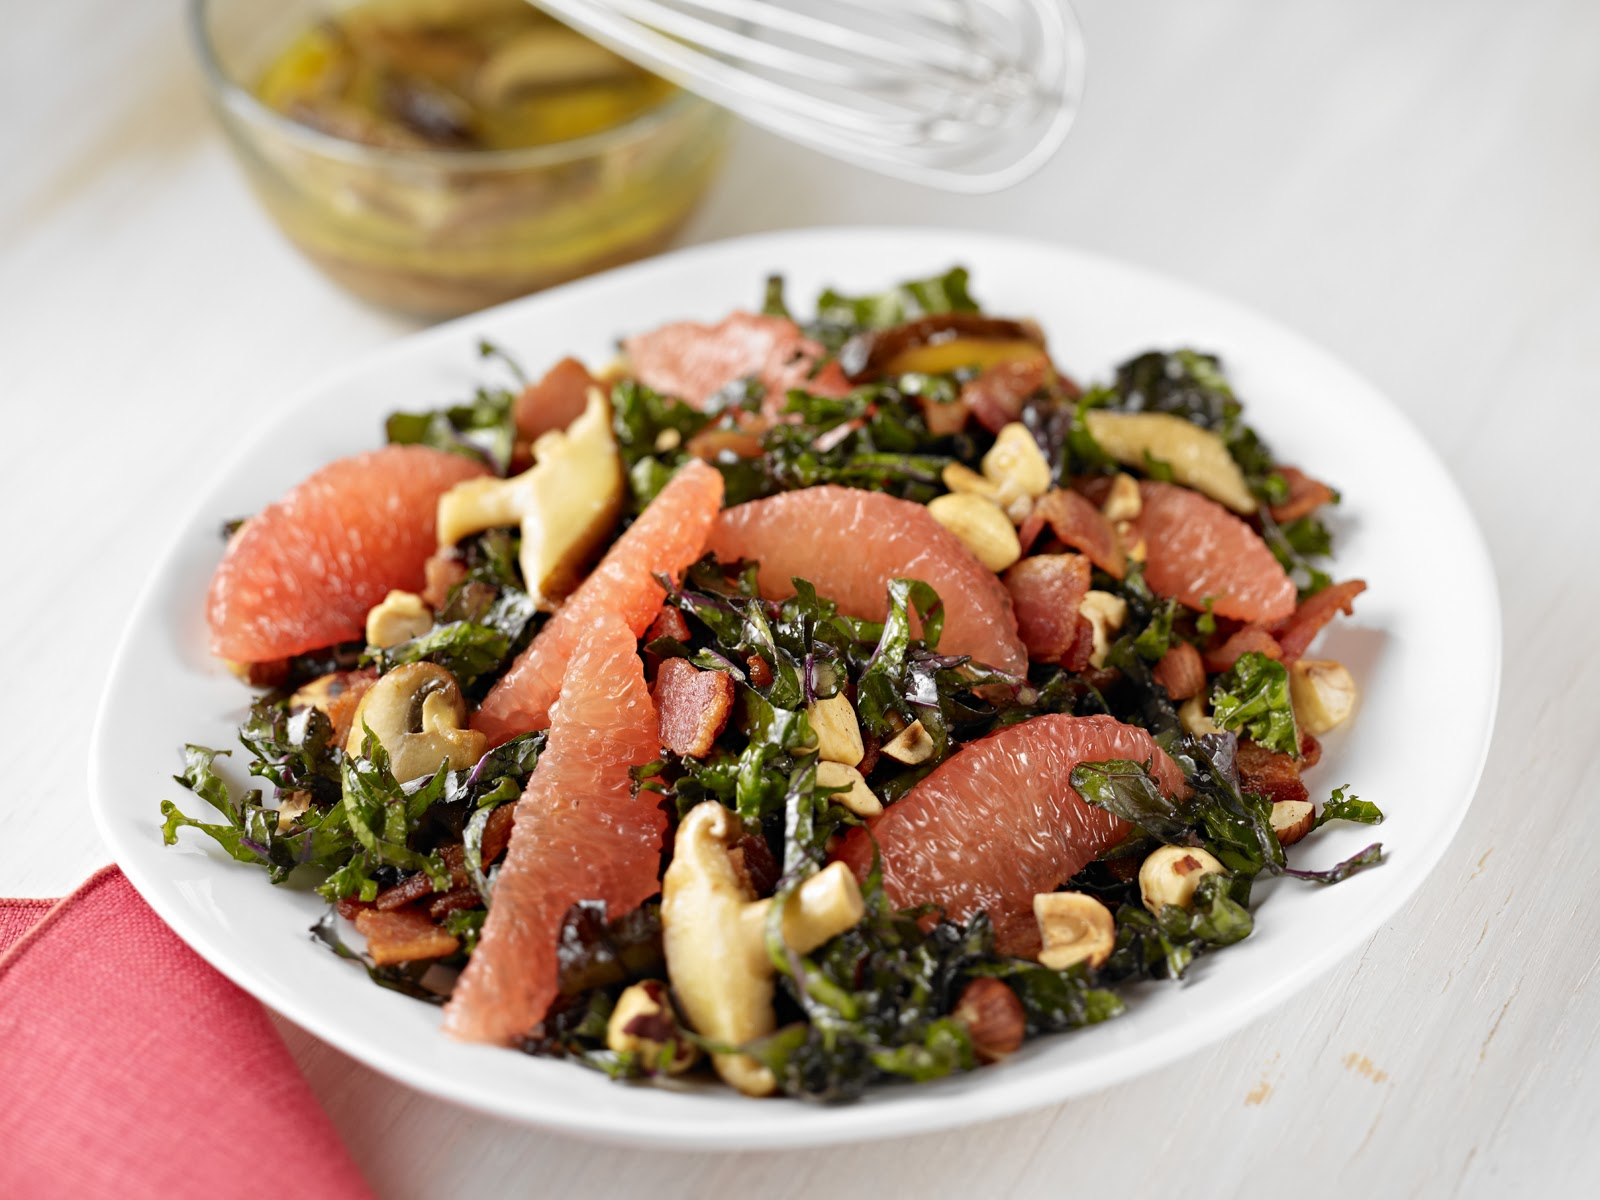 KALE + GRAPEFRUIT SALADWITH WARM BACON-WILD MUSHROOM DRESSING